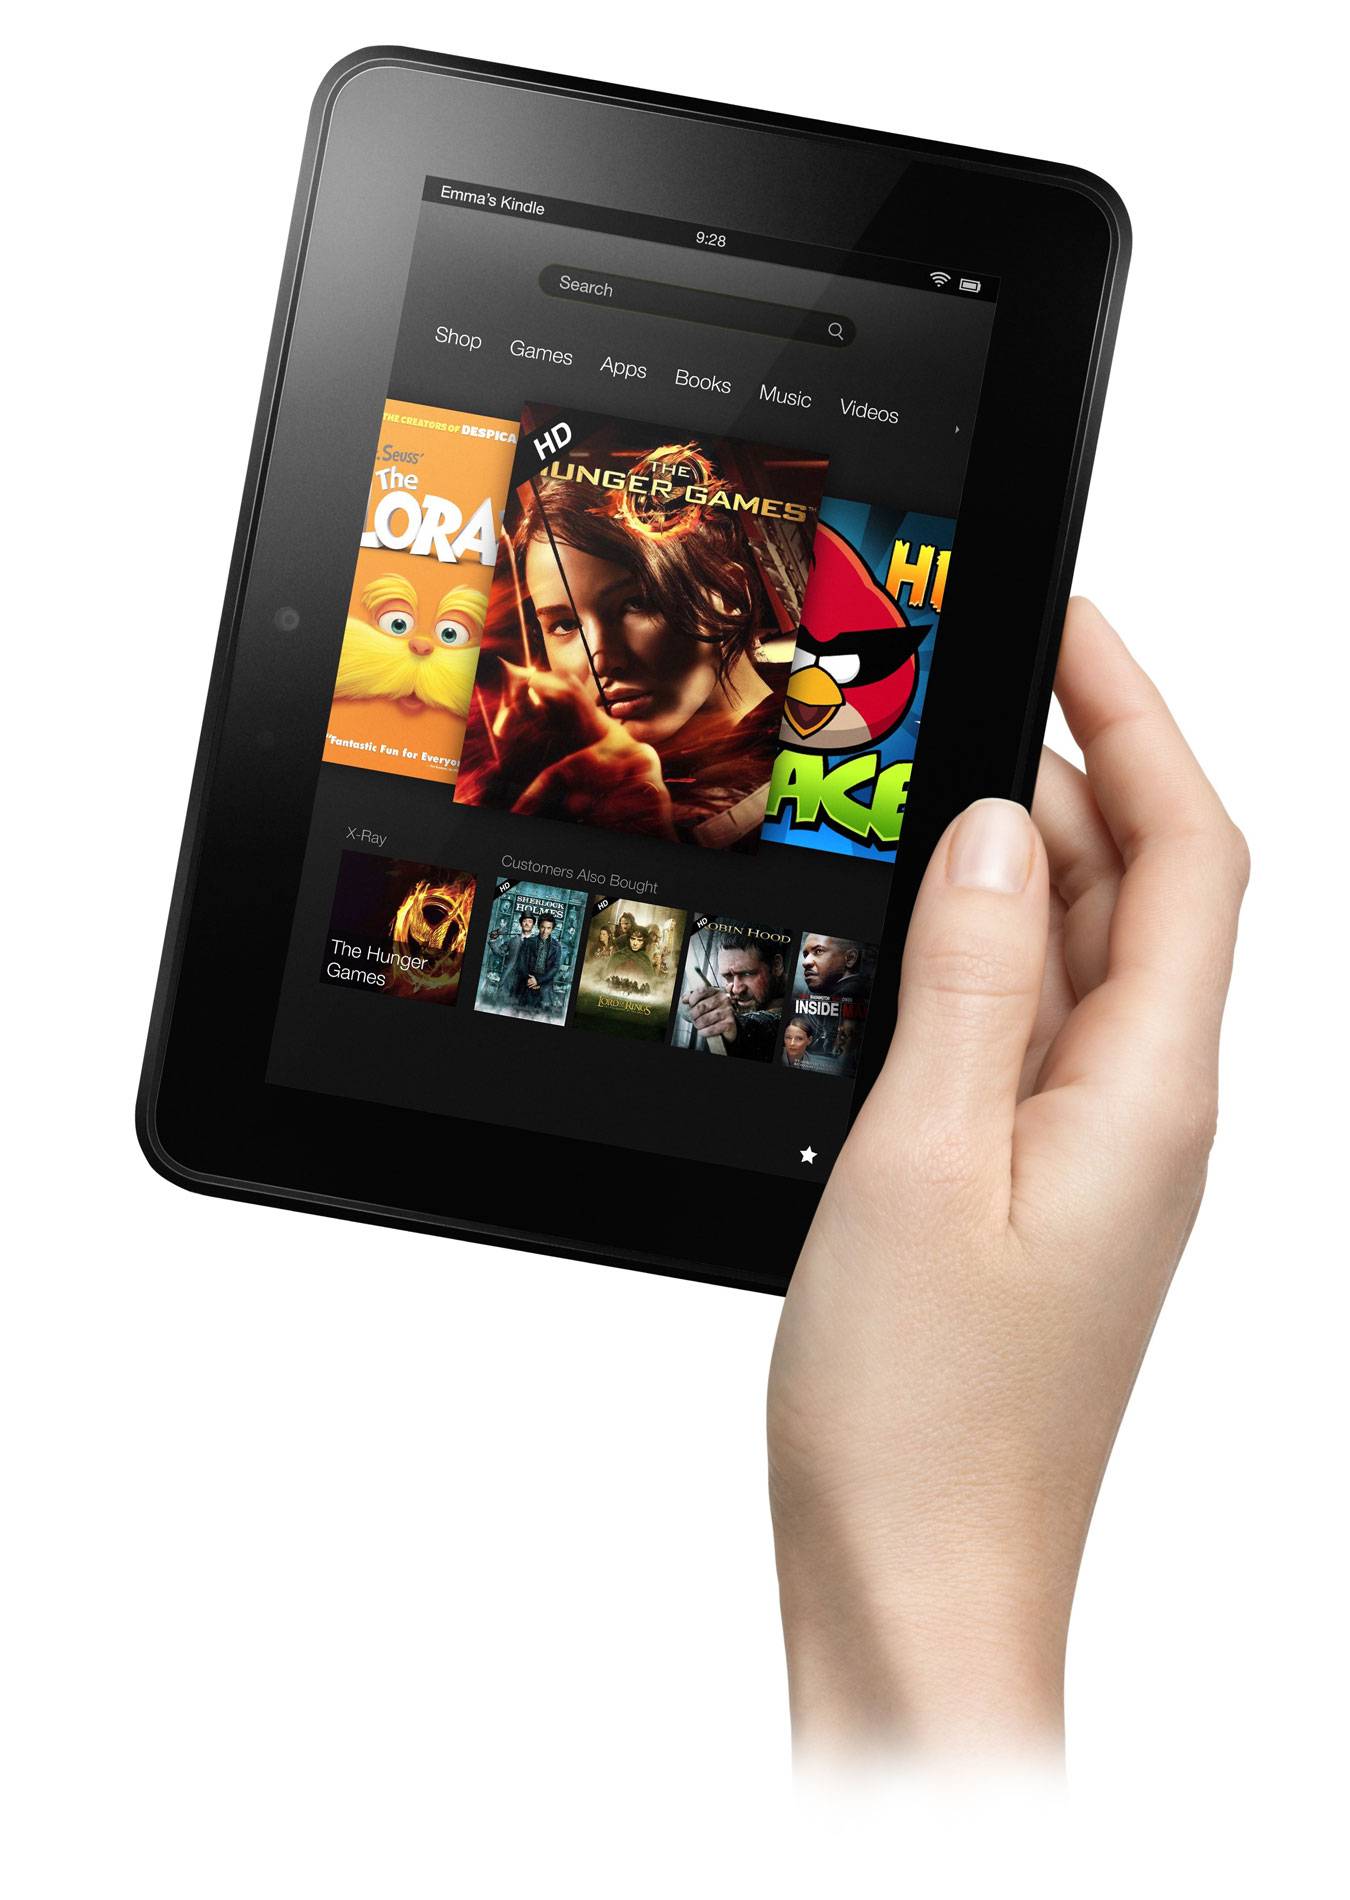 Amazon Kindle Fire HD 7 в руке